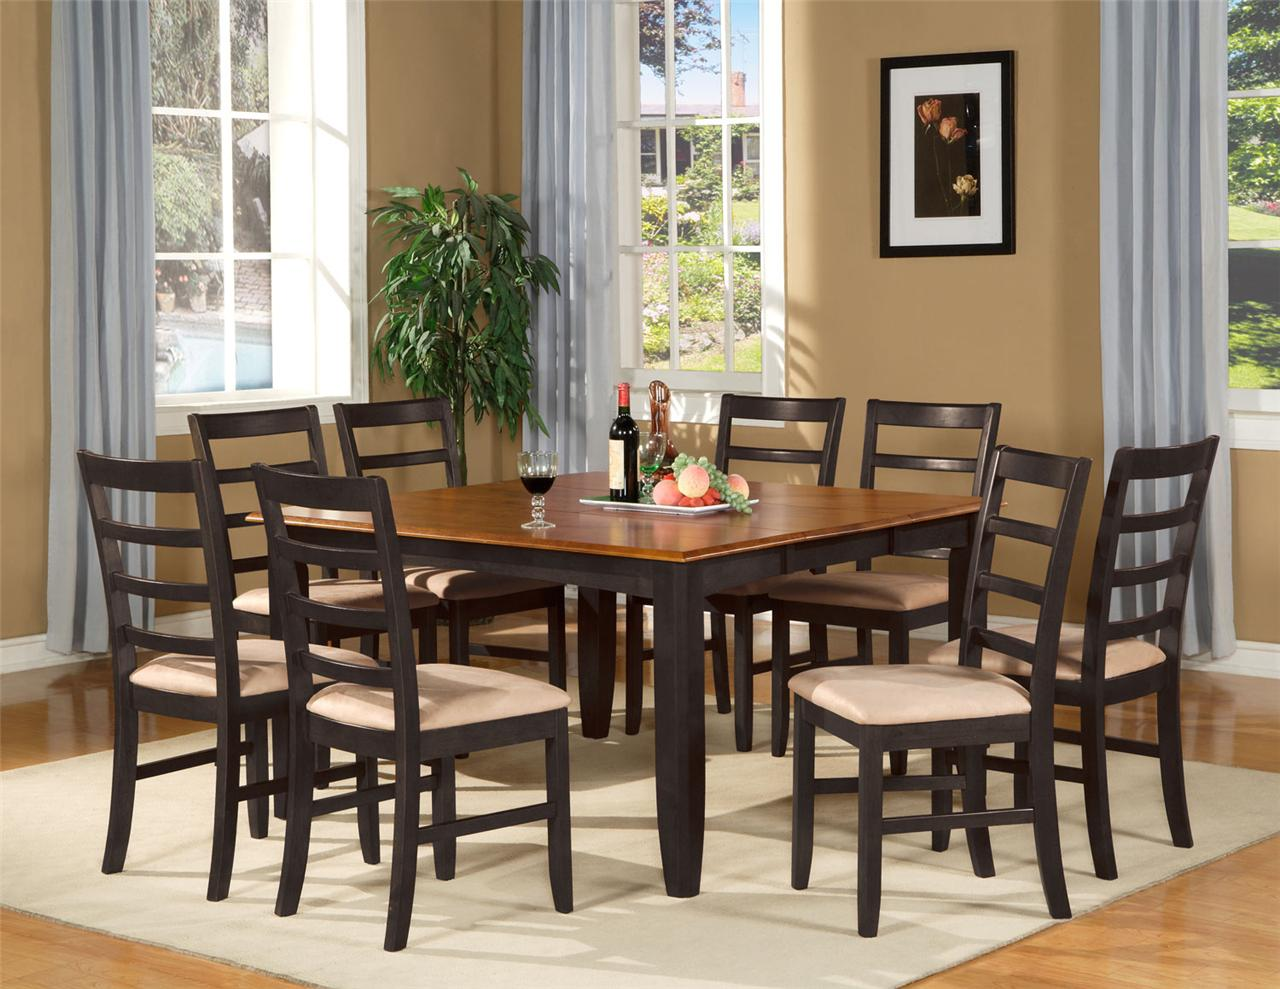 details about 7 pc square dinette kitchen dining table set 6 chairs